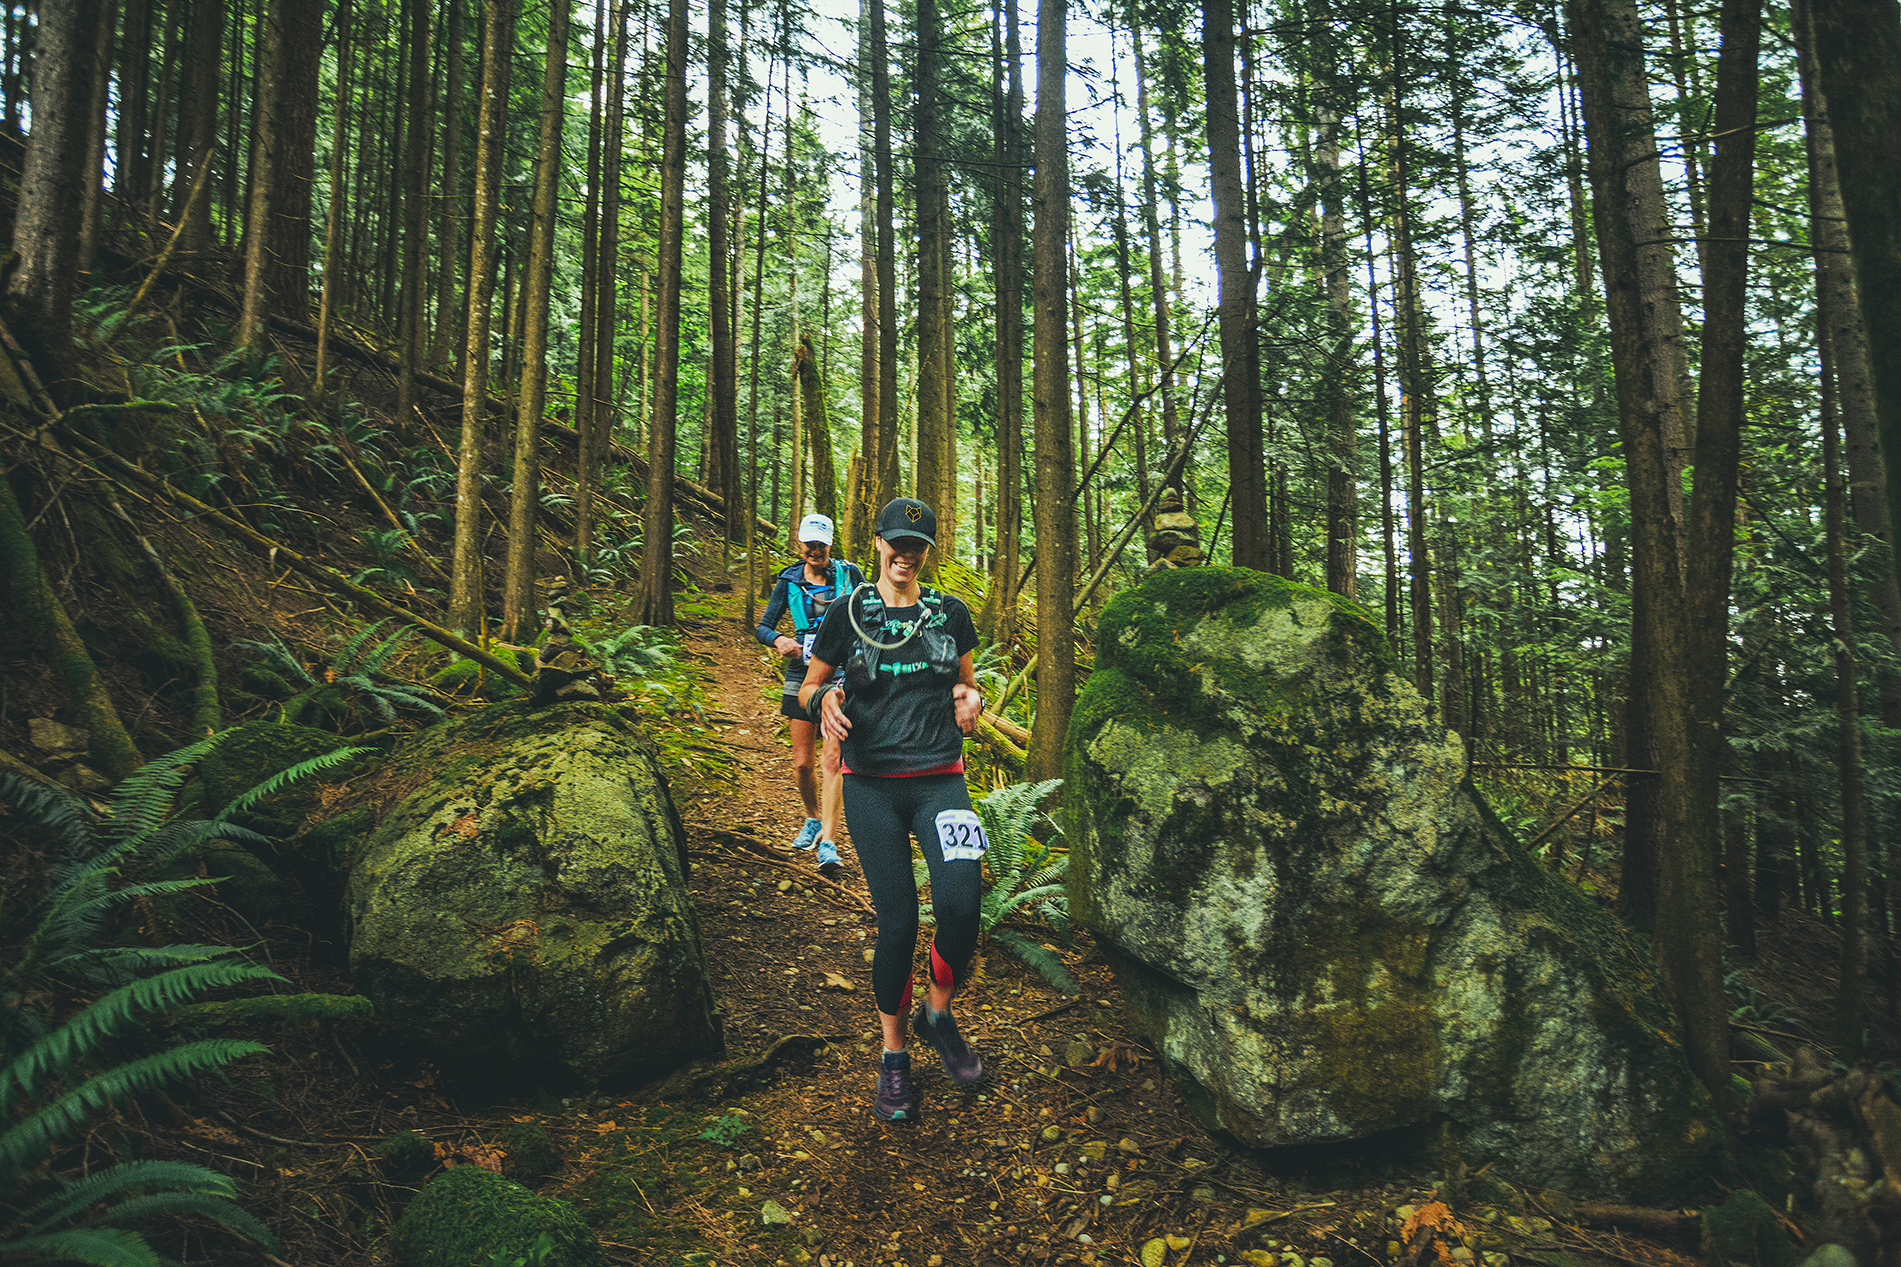 Fraser Valley Trail Races - Bear Mountain - IMG_3099 by Brice Ferre Studio - Vancouver Portrait Adventure and Athlete Photographer.jpg